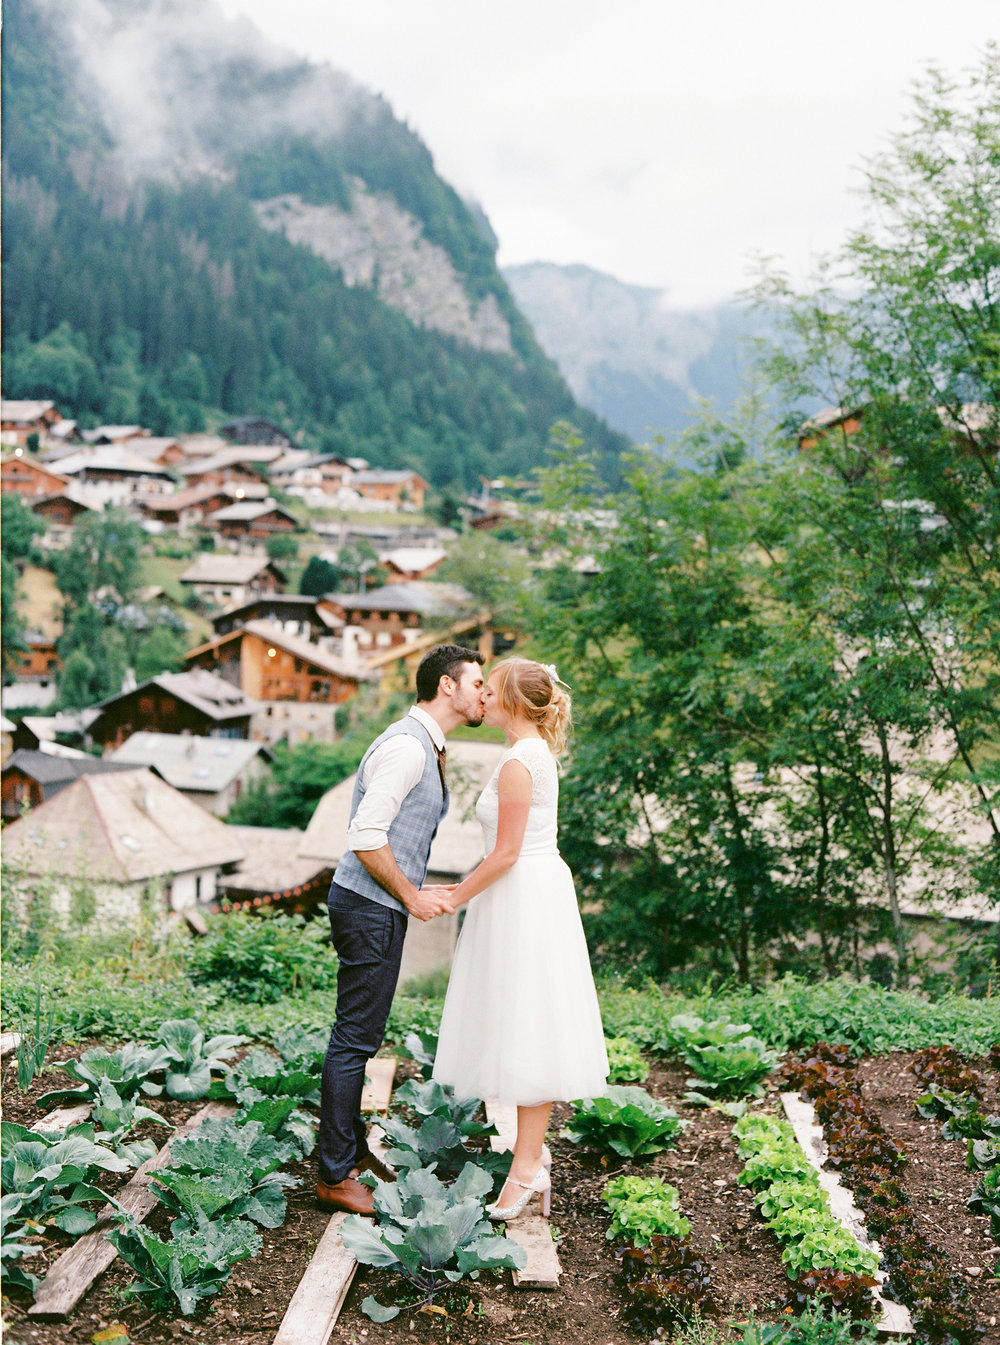 French Alps summer wedding - A beautiful wedding at The Farmhouse in Morzine. Reuben and Polly asked their closest friends and family from all over the globe to join them in this stunning mountain village for their wedding weekend. There was a thunderstorm during the ceremony, which was just perfect. Easy to see the love shine out with this one.